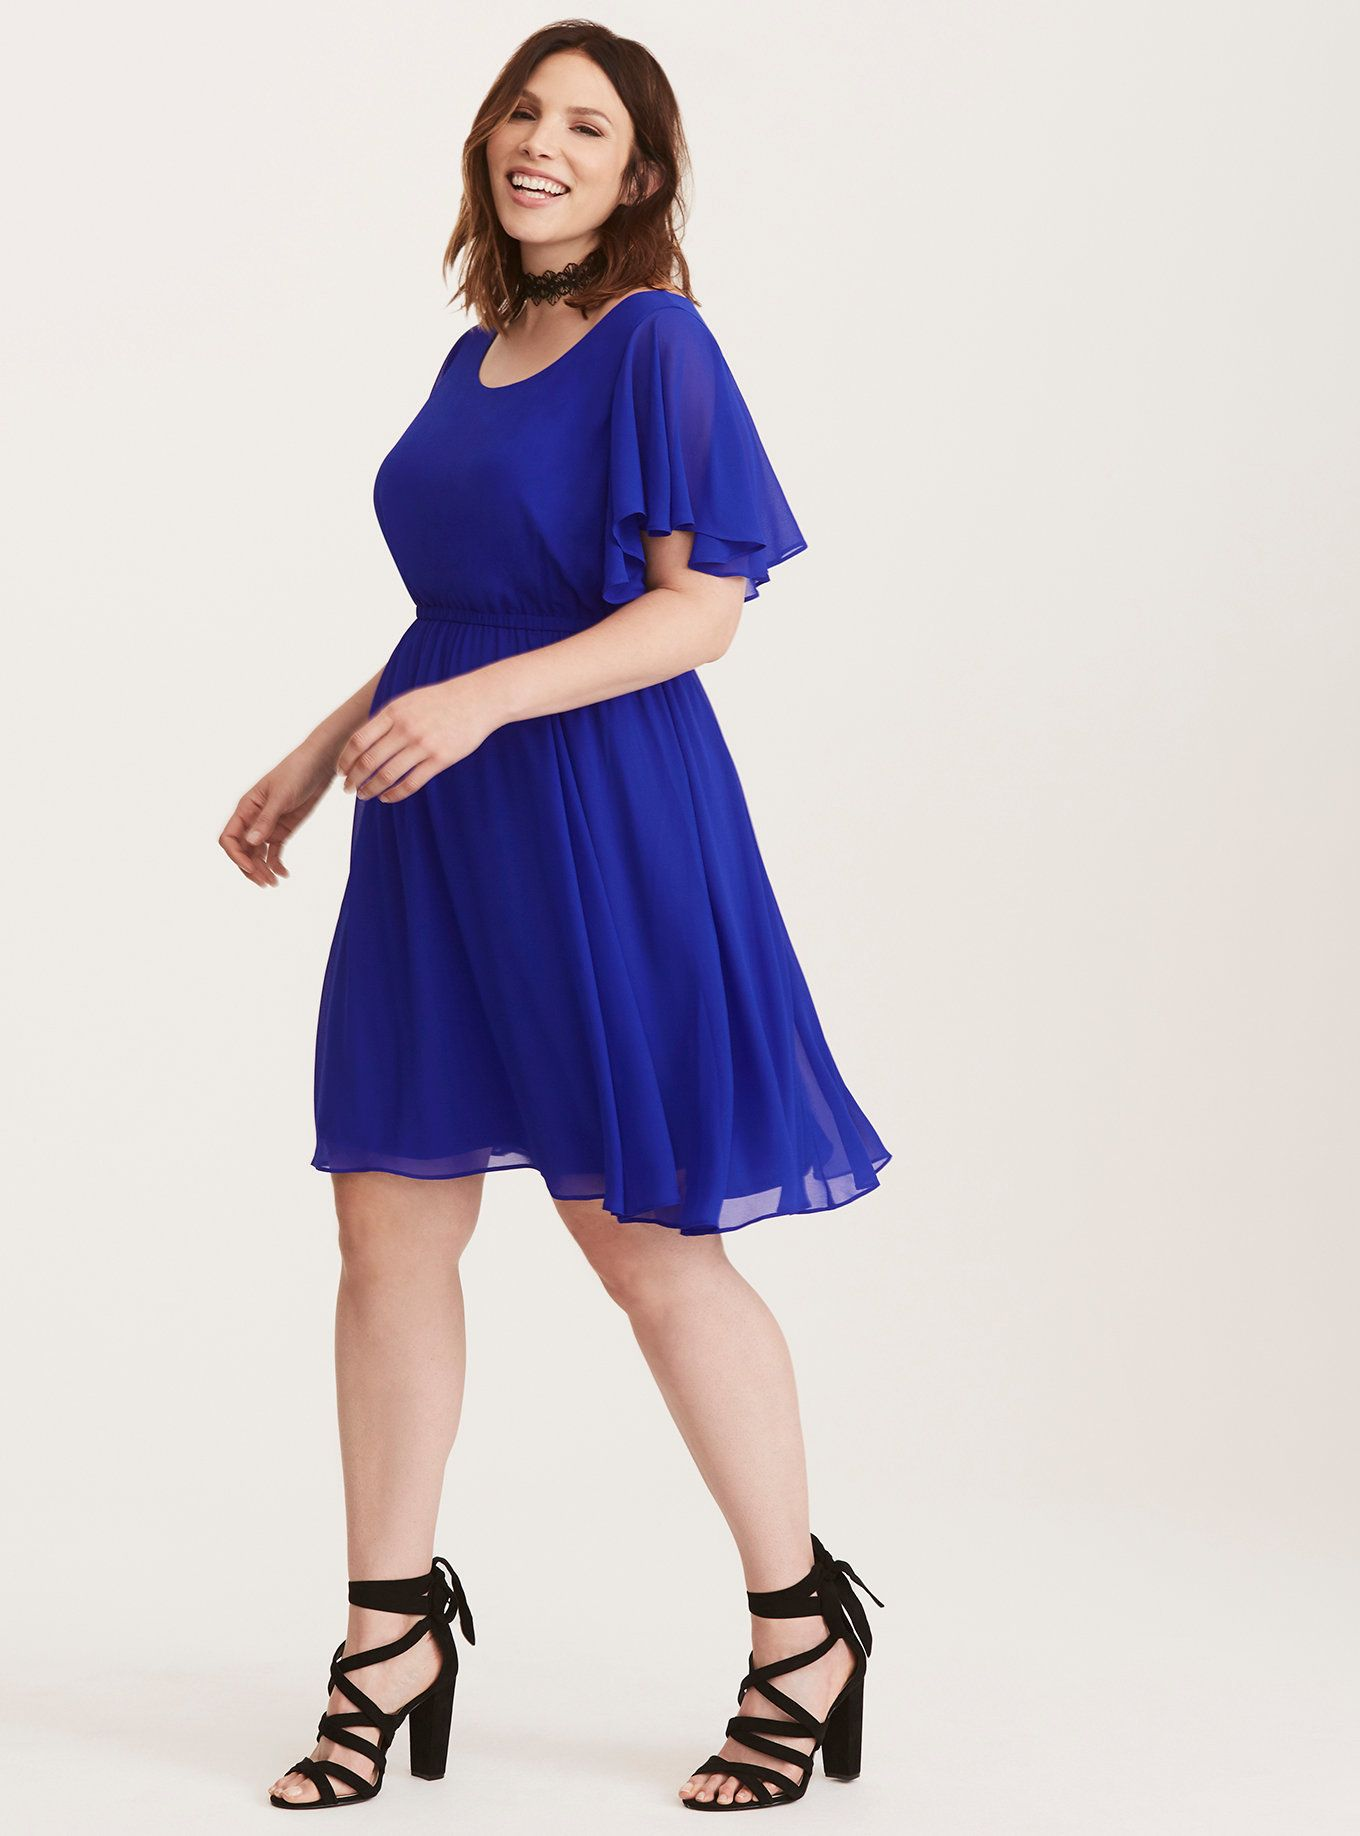 Cobalt Blue Chiffon Skater Dress | Pretty Pretty | Dresses ...